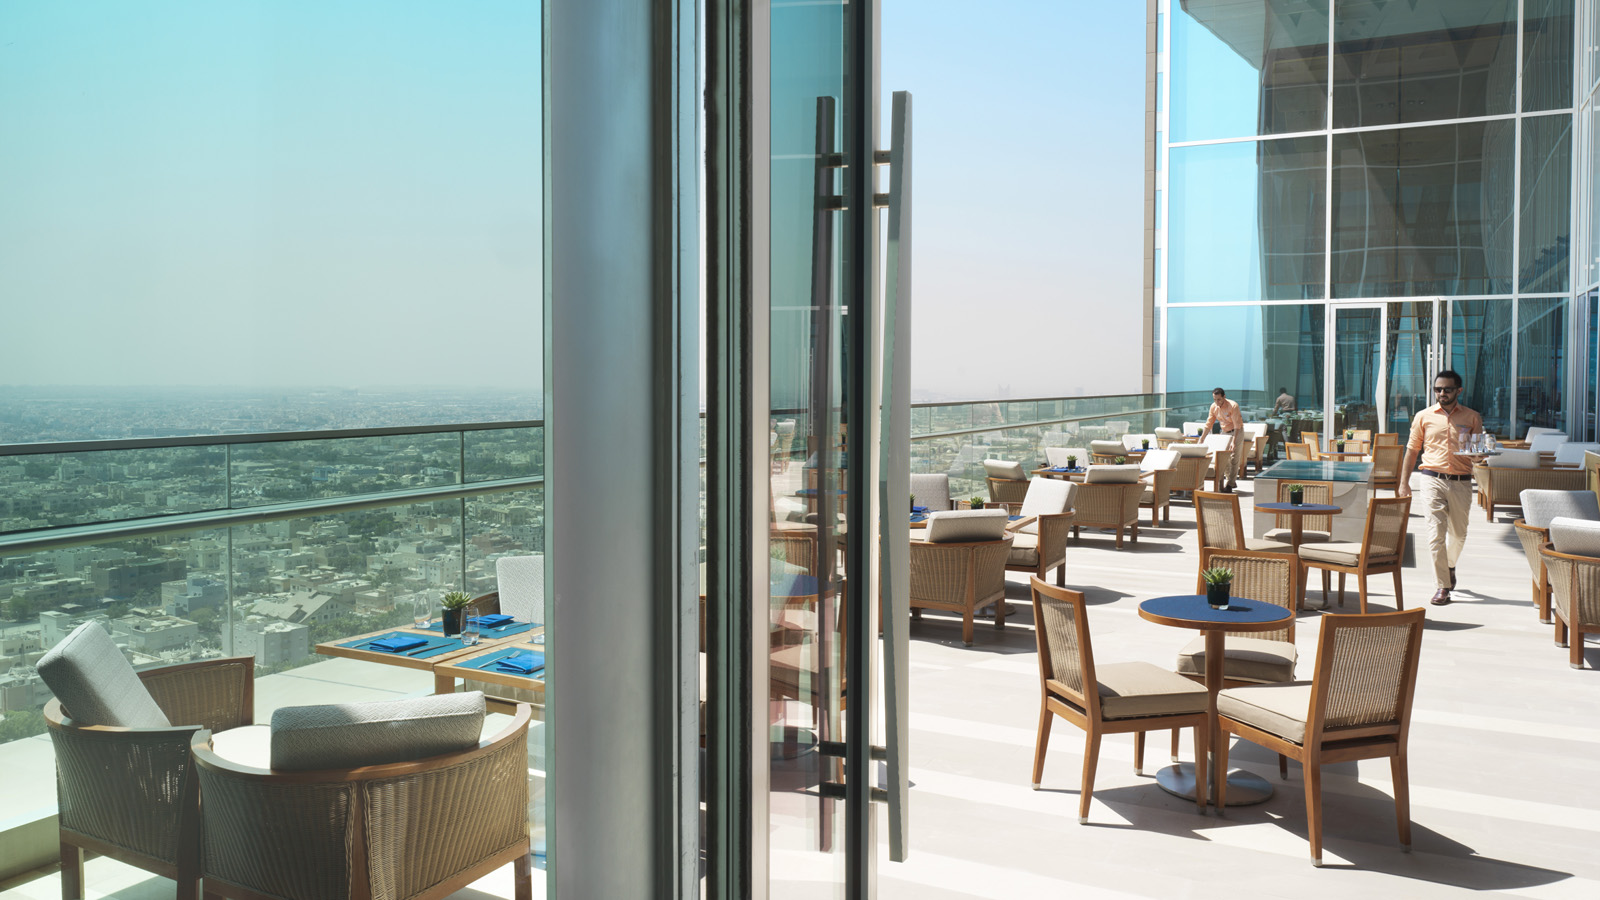 Desain Glass Block Design Notes Four Seasons Hotel Kuwait At Burj Alshaya